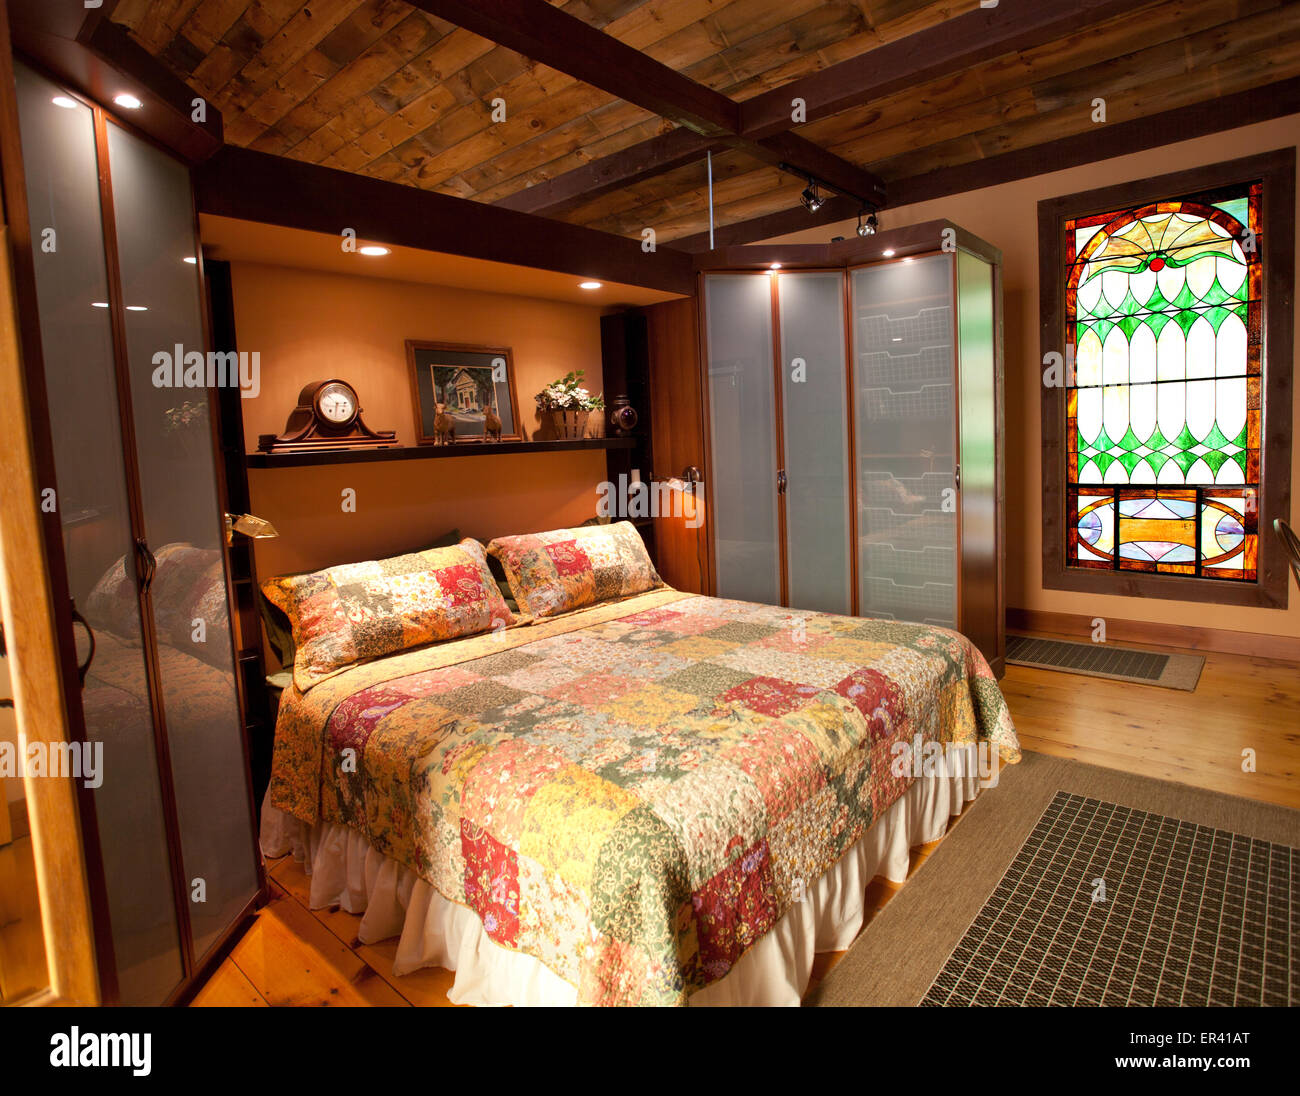 Interior detail of master bedroom. Vermont dairy barn renovated into a unique home featuring antique stained glass Stock Photo